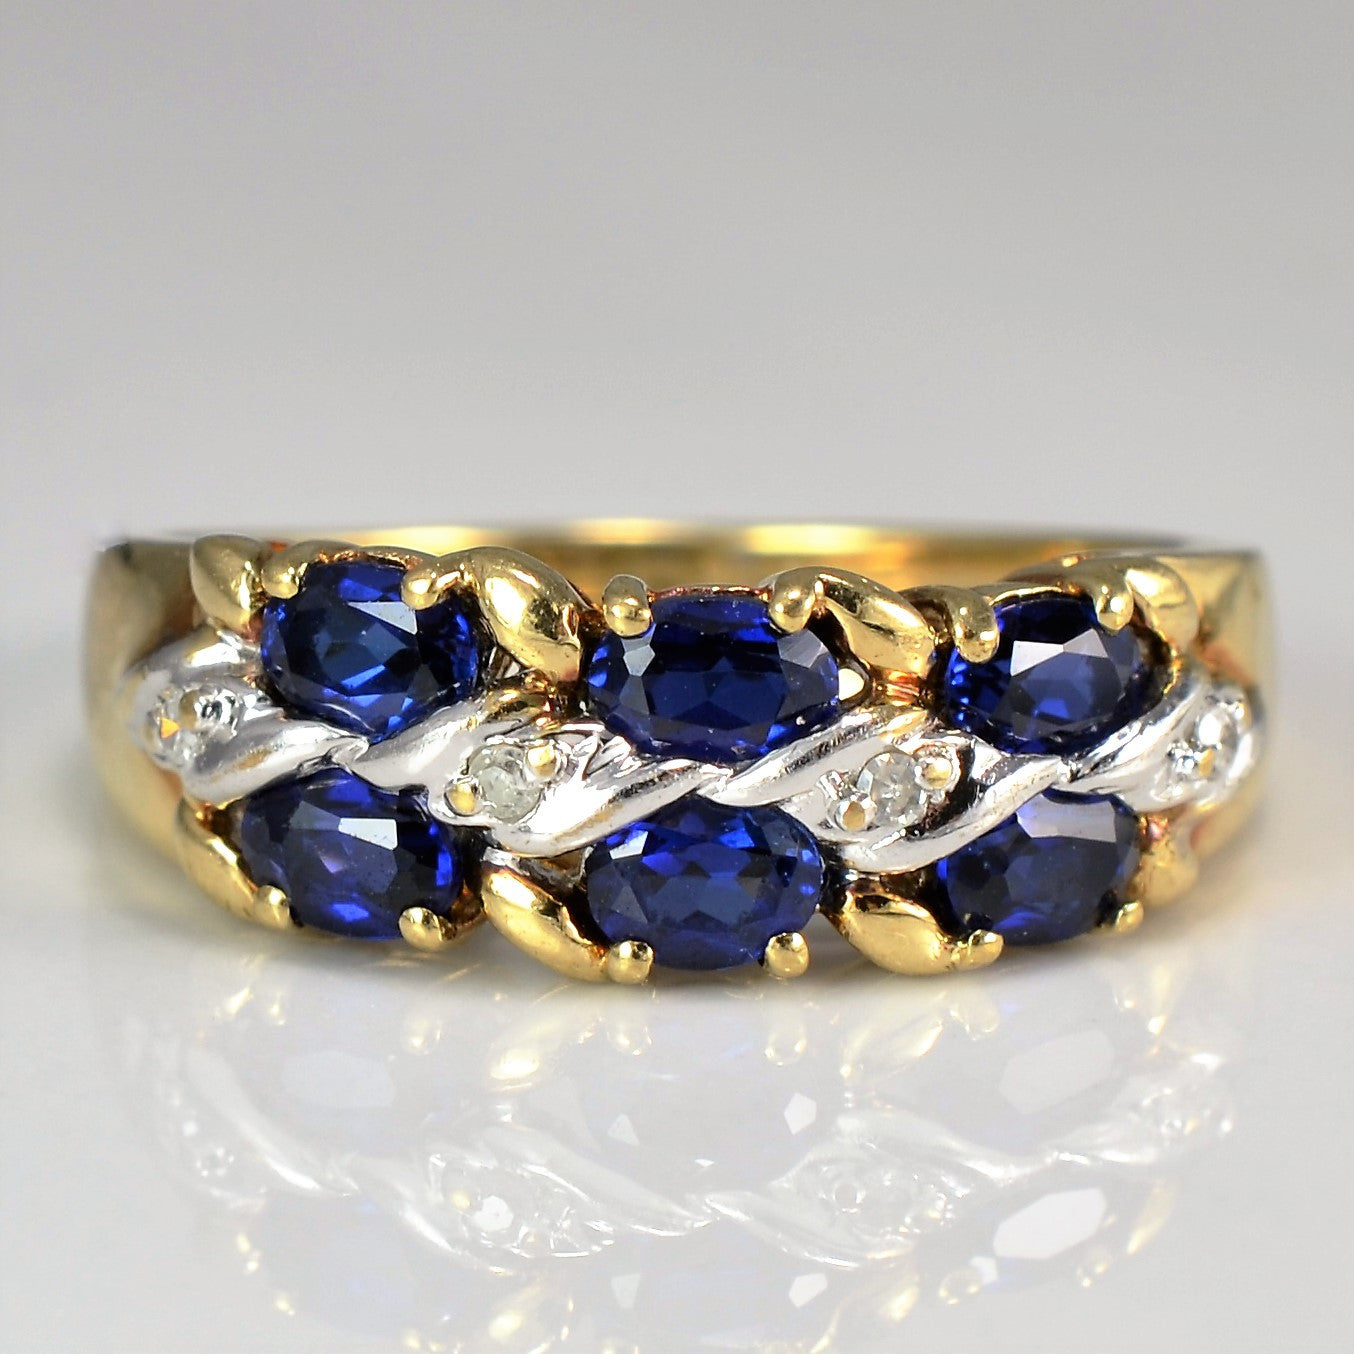 Oval Sapphire Ring With Diamond Twist Accent | 0.04 ctw, SZ 8 |